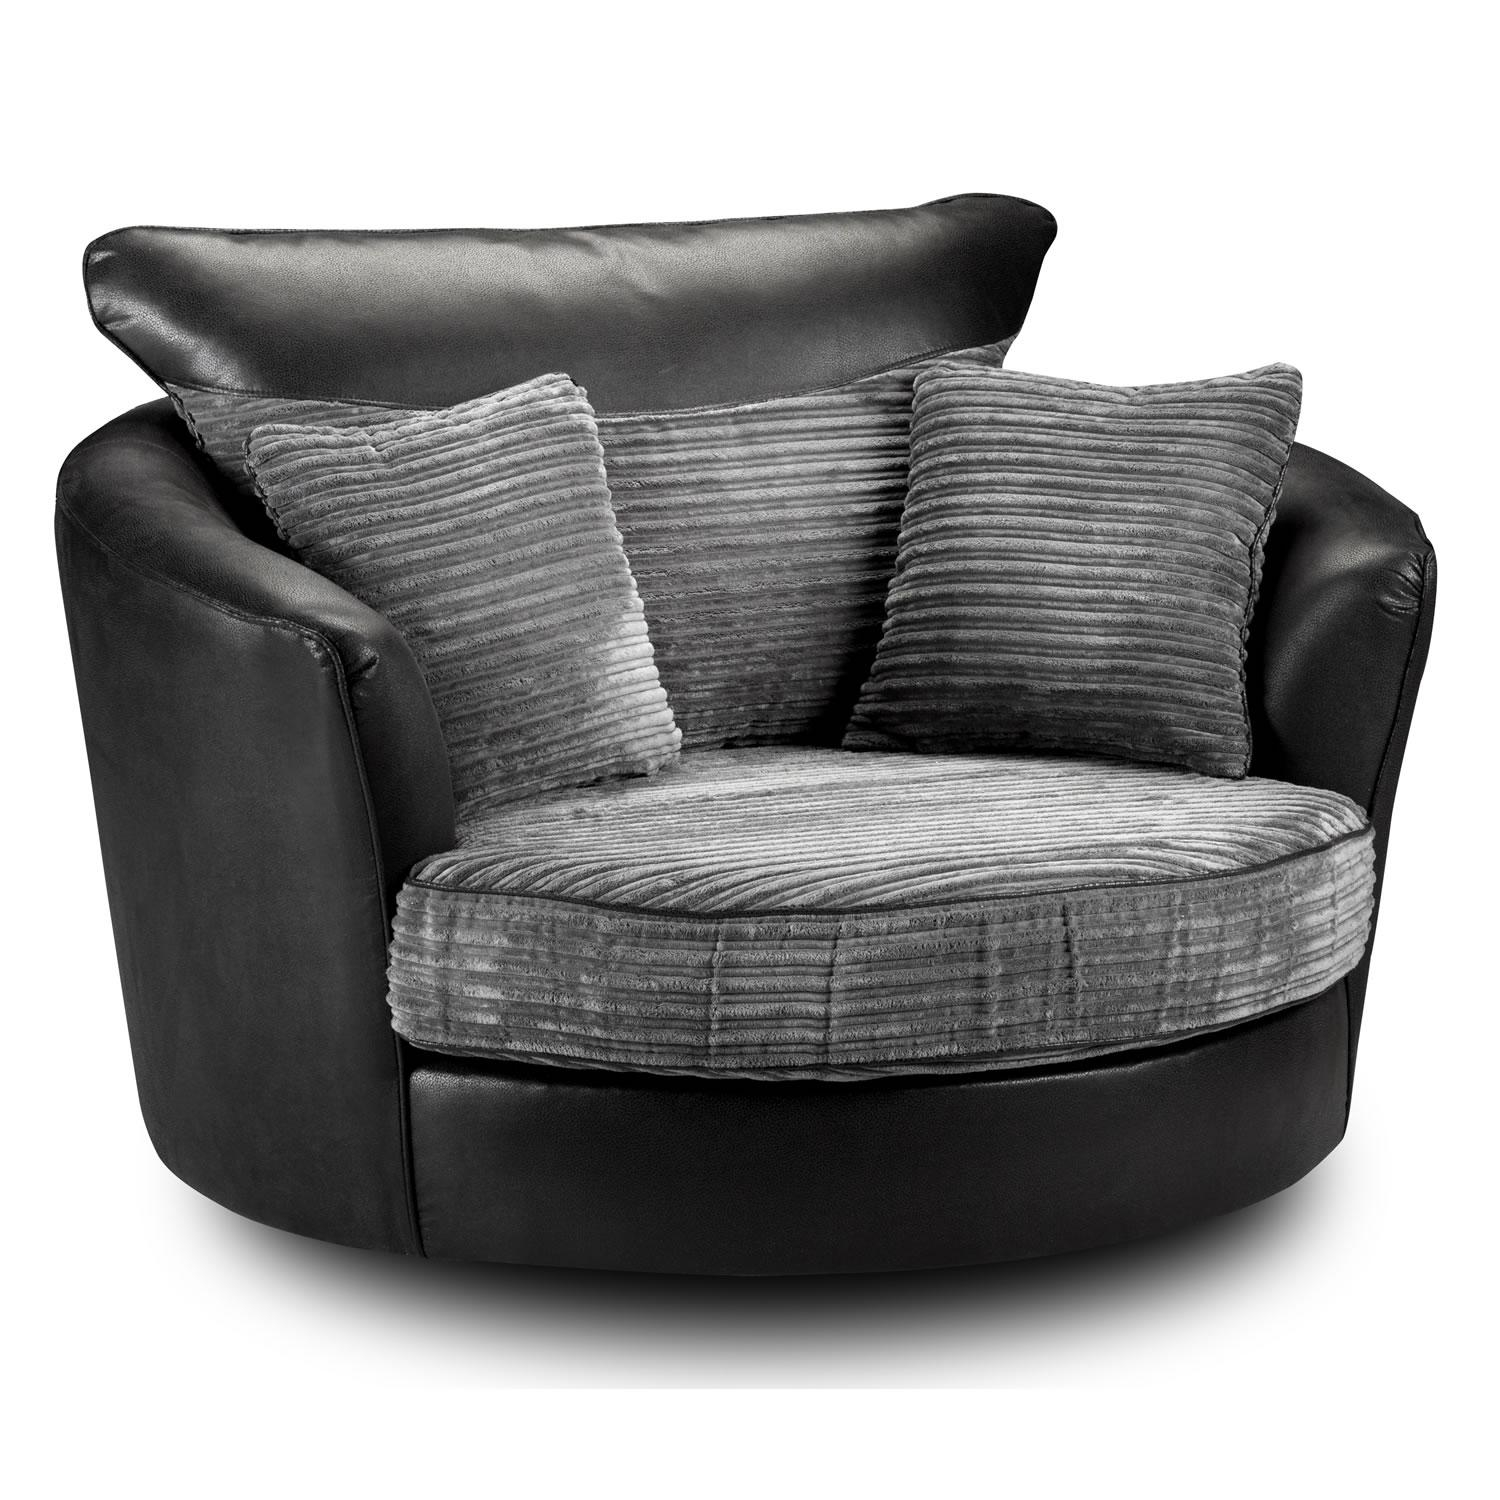 Furniture Home : Markus Swivel Chair Glose Black 0399201 Pe563352 Throughout Cuddler Swivel Sofa Chairs (View 15 of 20)